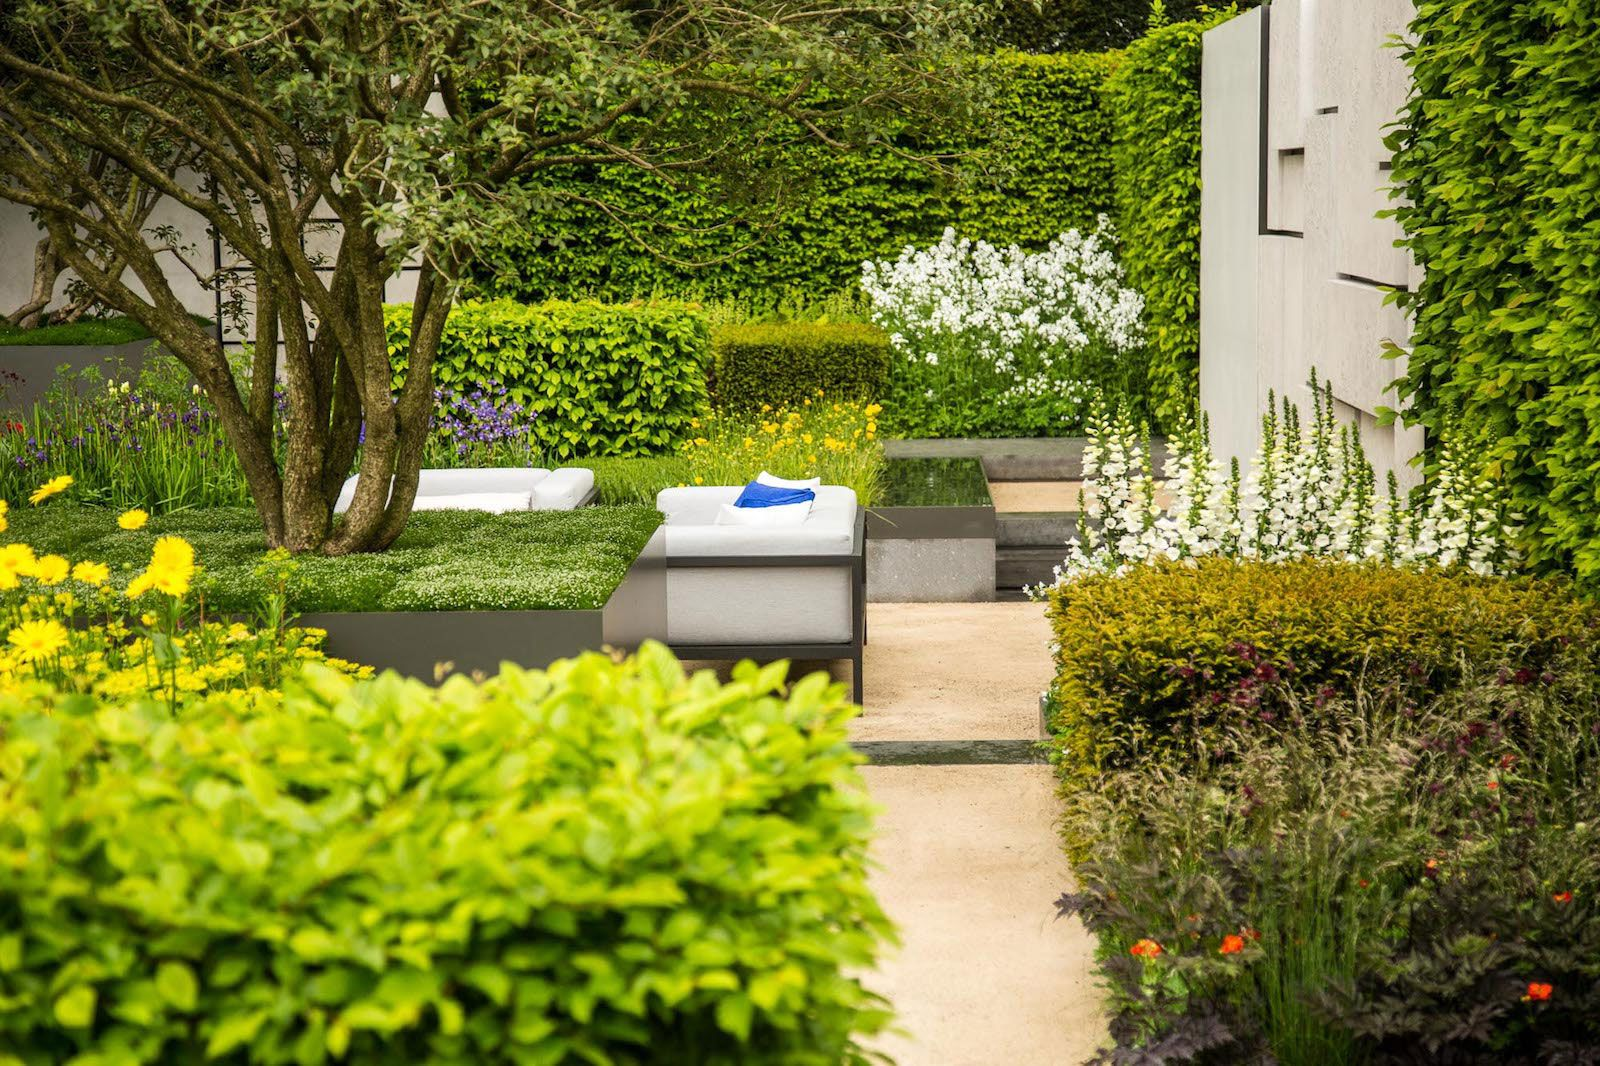 Garden Design Courses From The Oxford College Of Garden Design Outdoor Gardens Design Garden Design Easy Landscaping